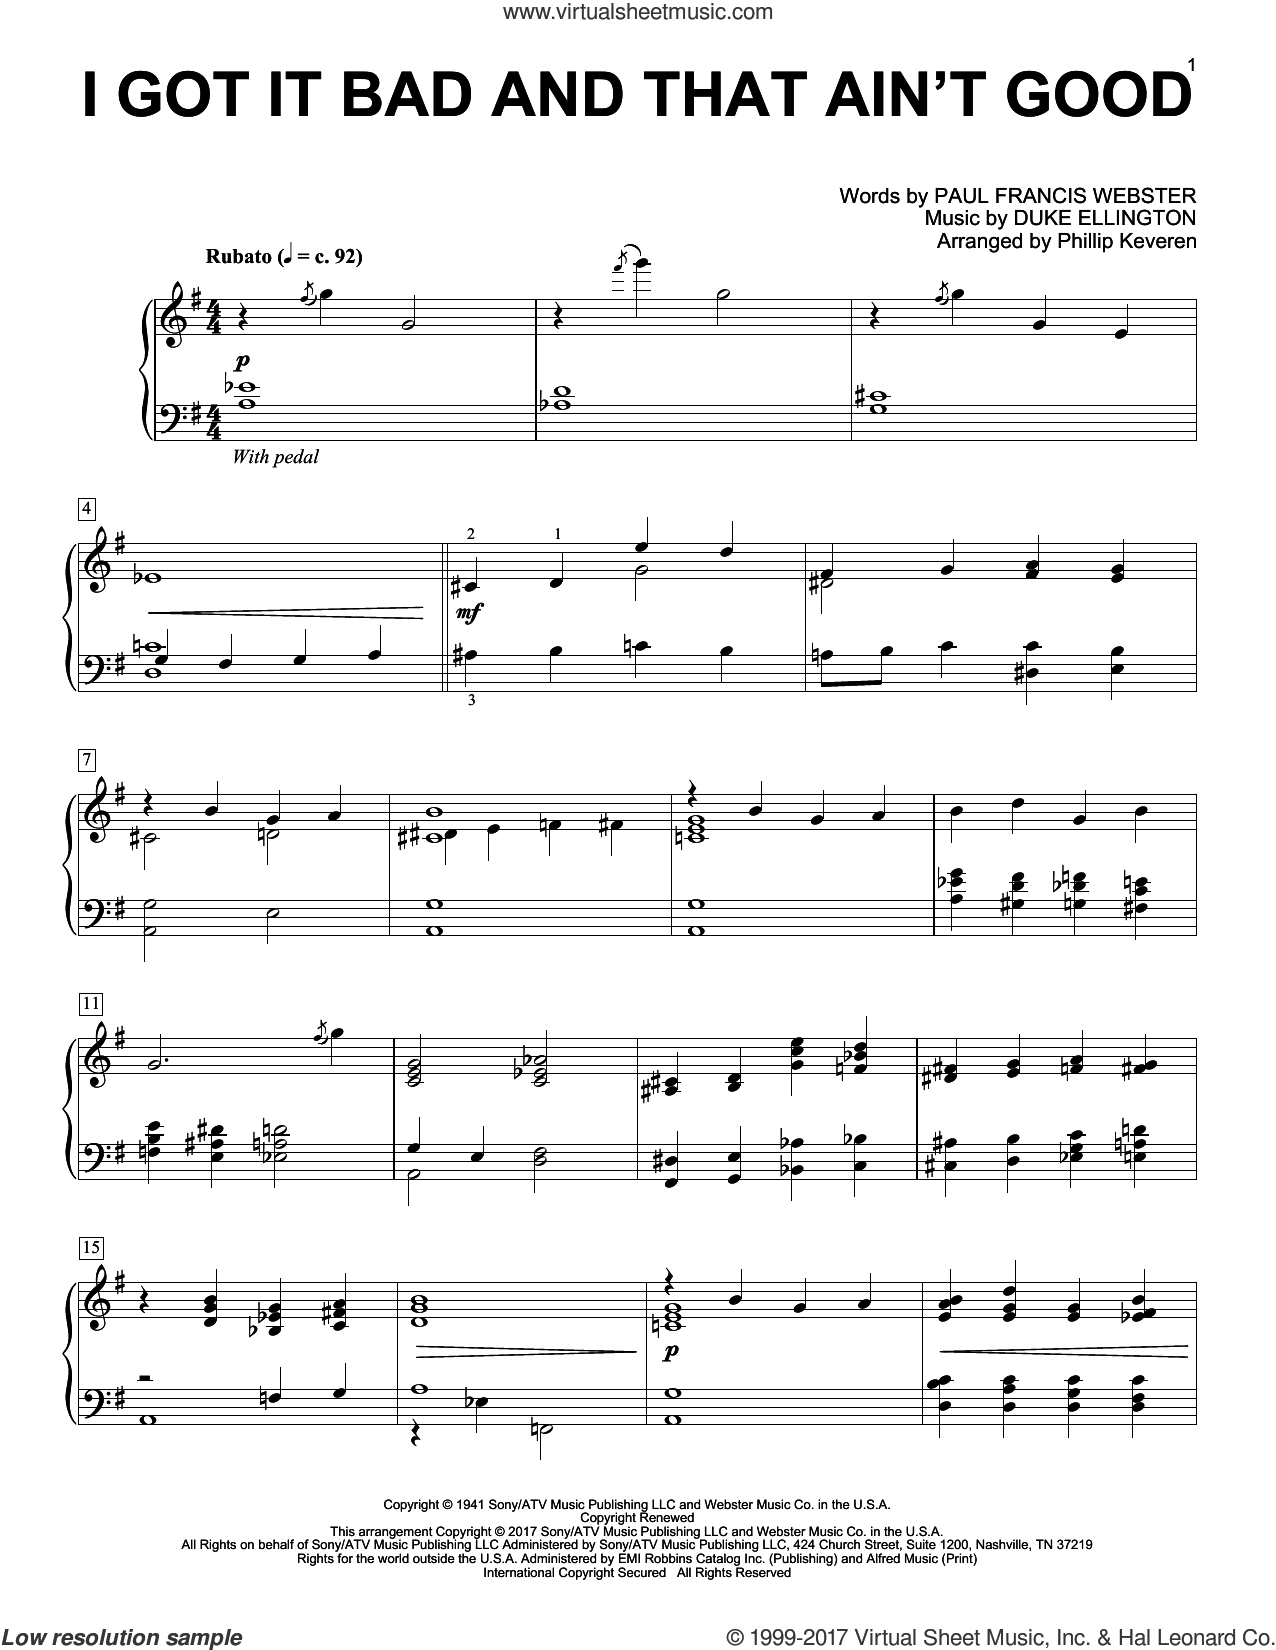 I Got It Bad And That Ain't Good sheet music for piano solo by Duke Ellington, Phillip Keveren and Paul Francis Webster, intermediate